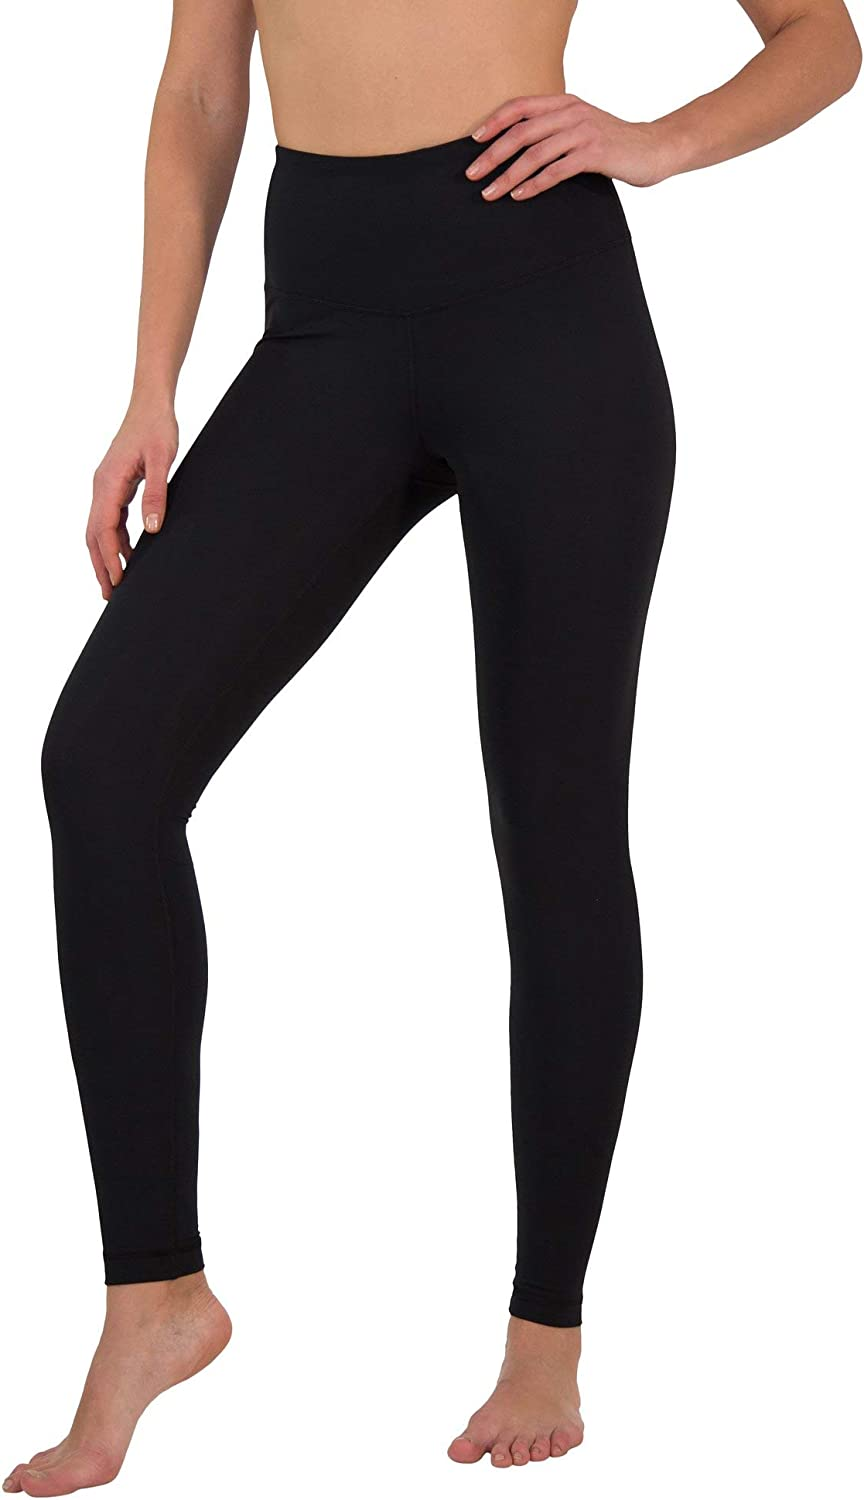 Yogalicious High Waist Ultra Soft Lightweight